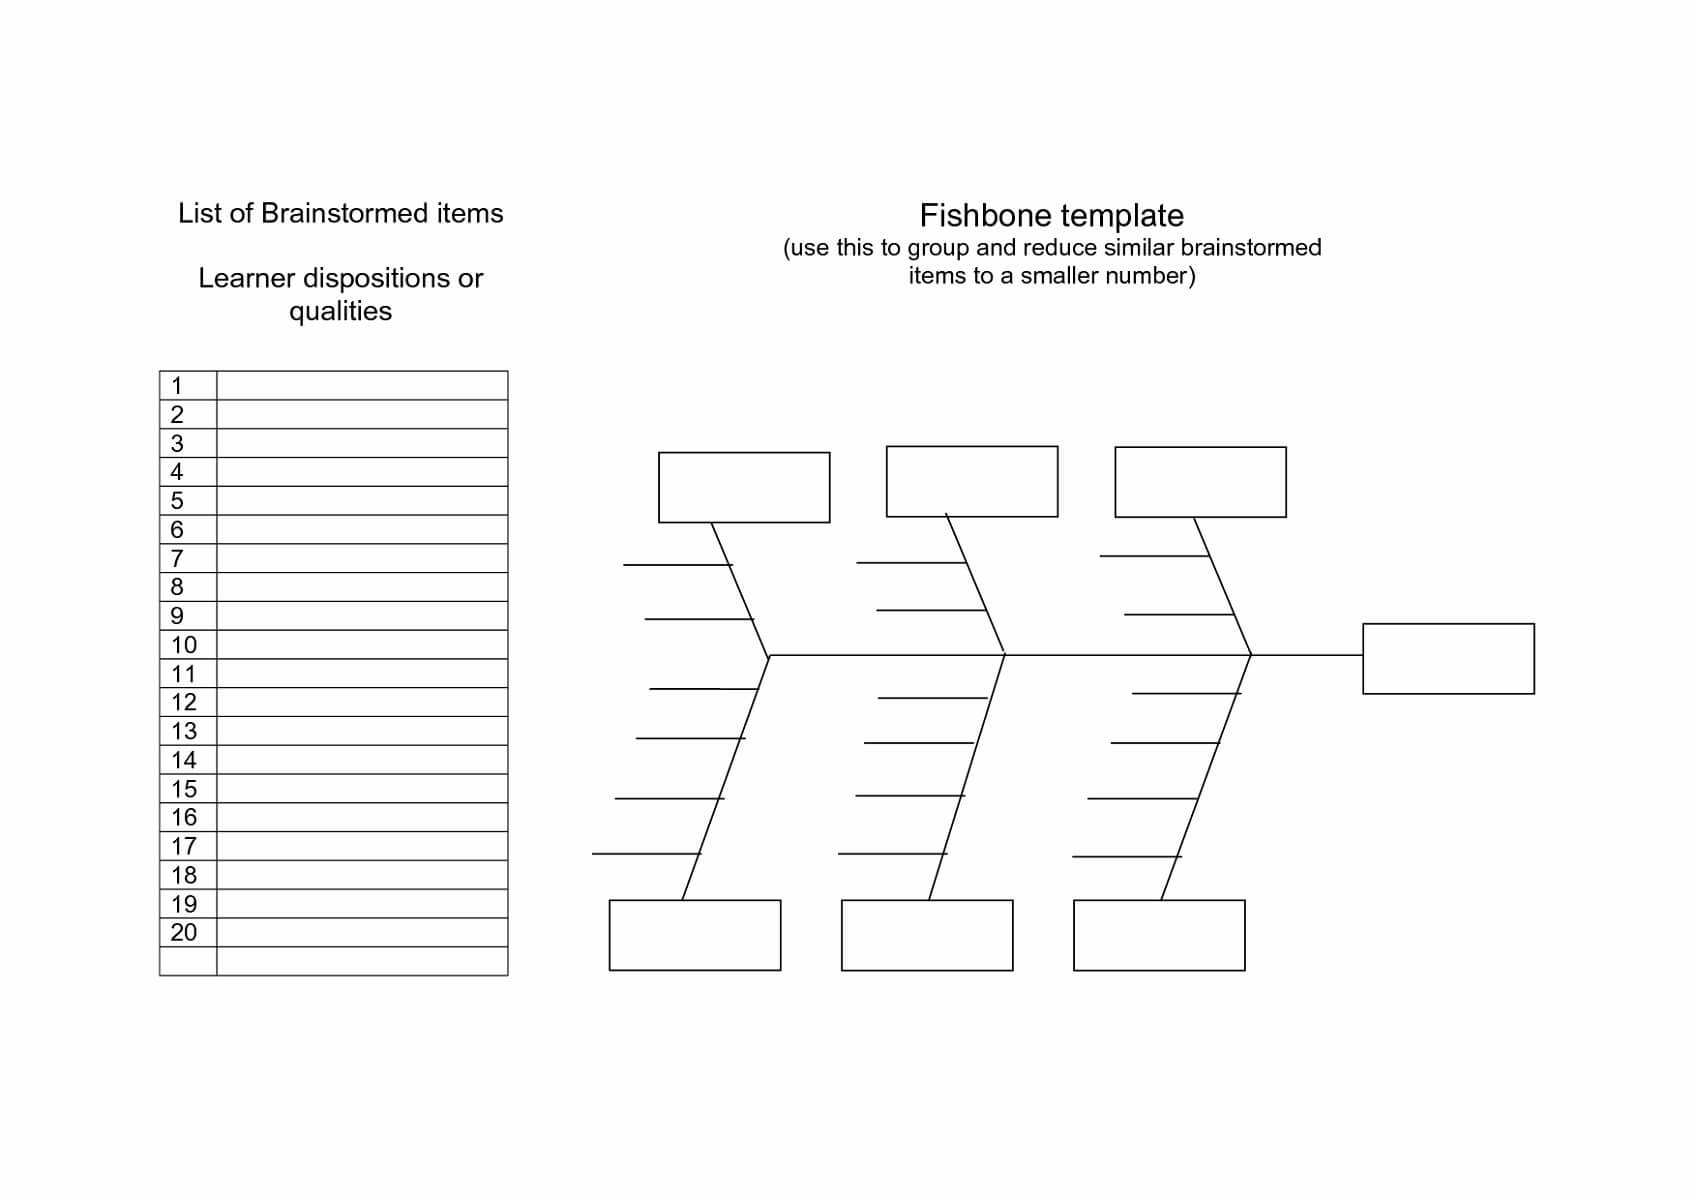 024 Fishbone Diagram Template Word Doc Lovely Ishikawa intended for Blank Fishbone Diagram Template Word